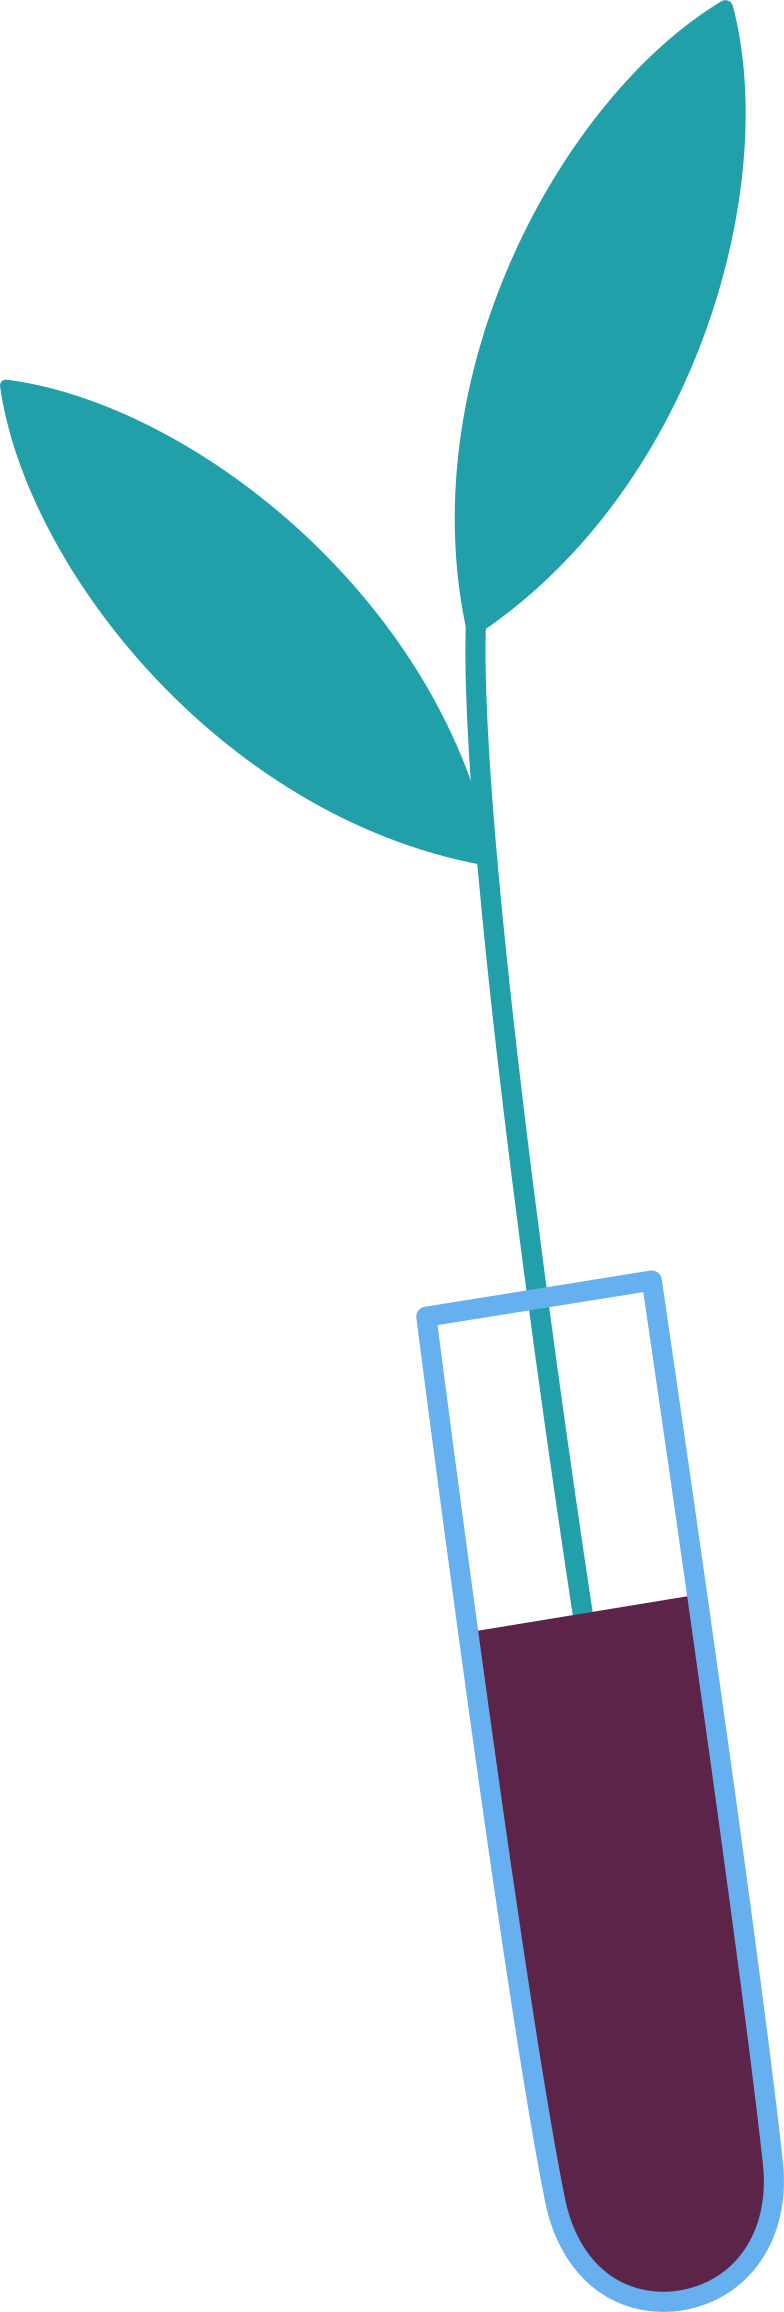 plant in test tube Clipart illustration in PNG, SVG